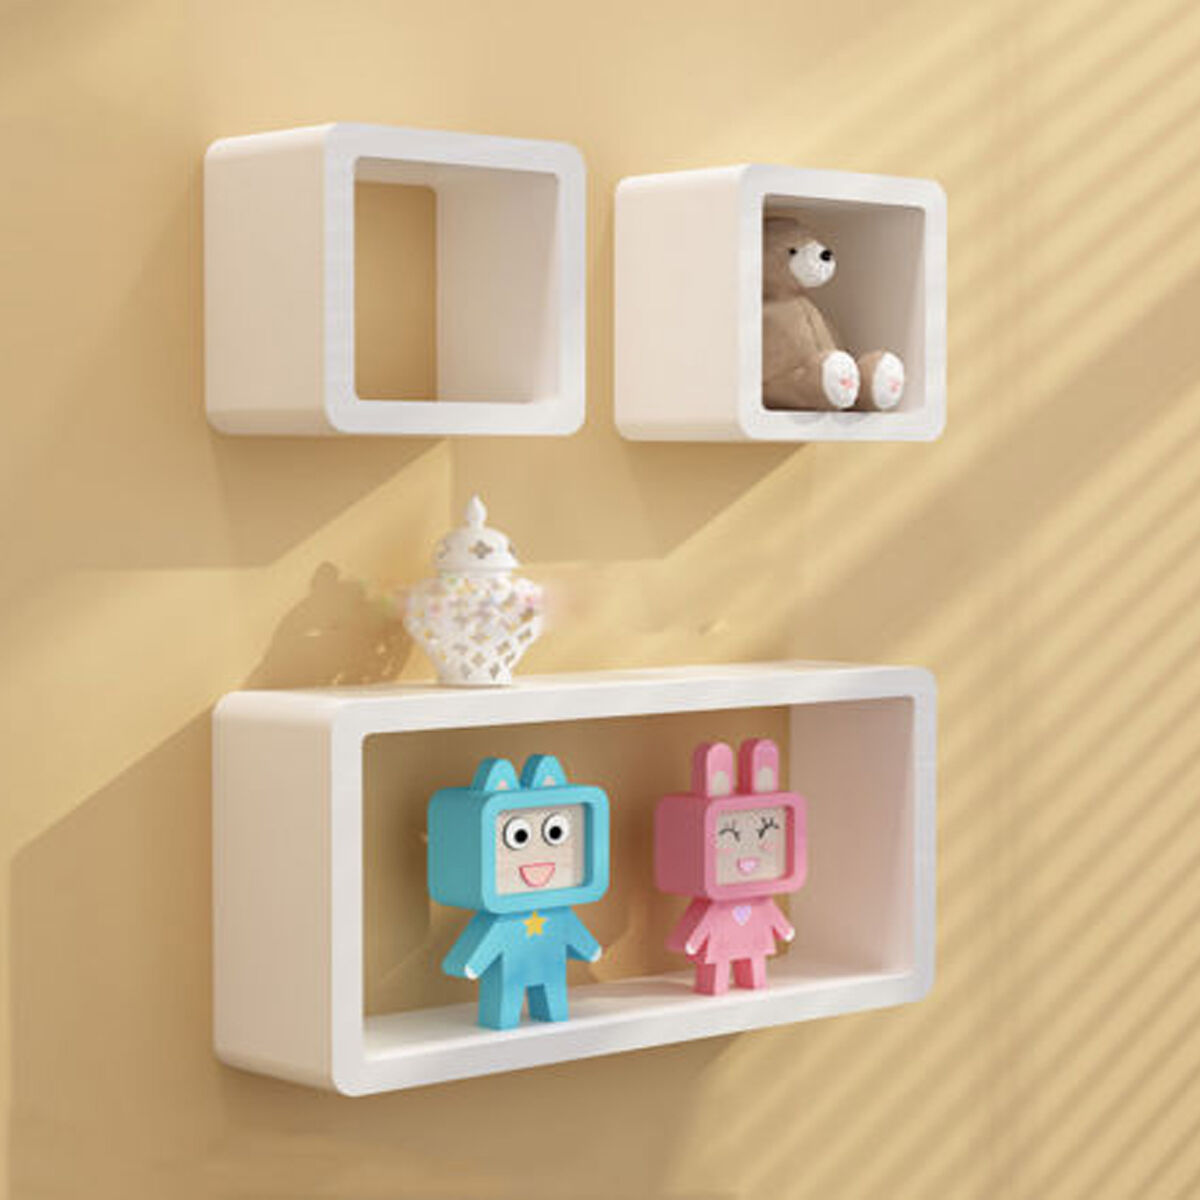 Amazing Decorative Wall Cubes Shelves Ornament - The Wall Art ...